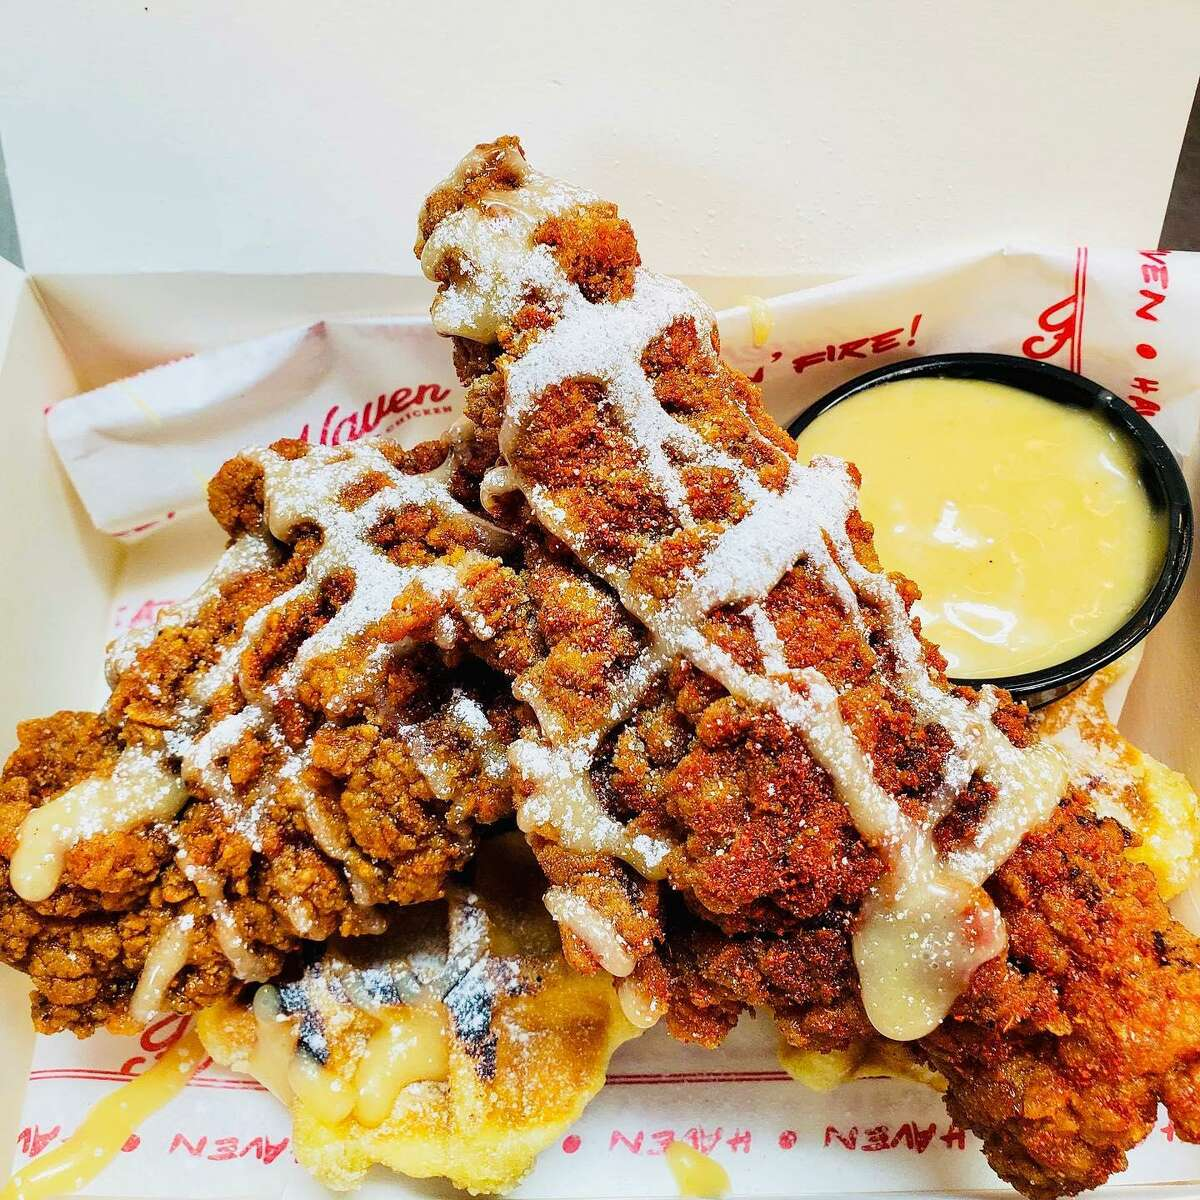 Haven Hot Chicken's chicken and waffles meal features two jumbo tenders with your choice of heat and a pair of Liege waffles, drizzled with maple brown-sugar aioli and dusted with powdered sugar.